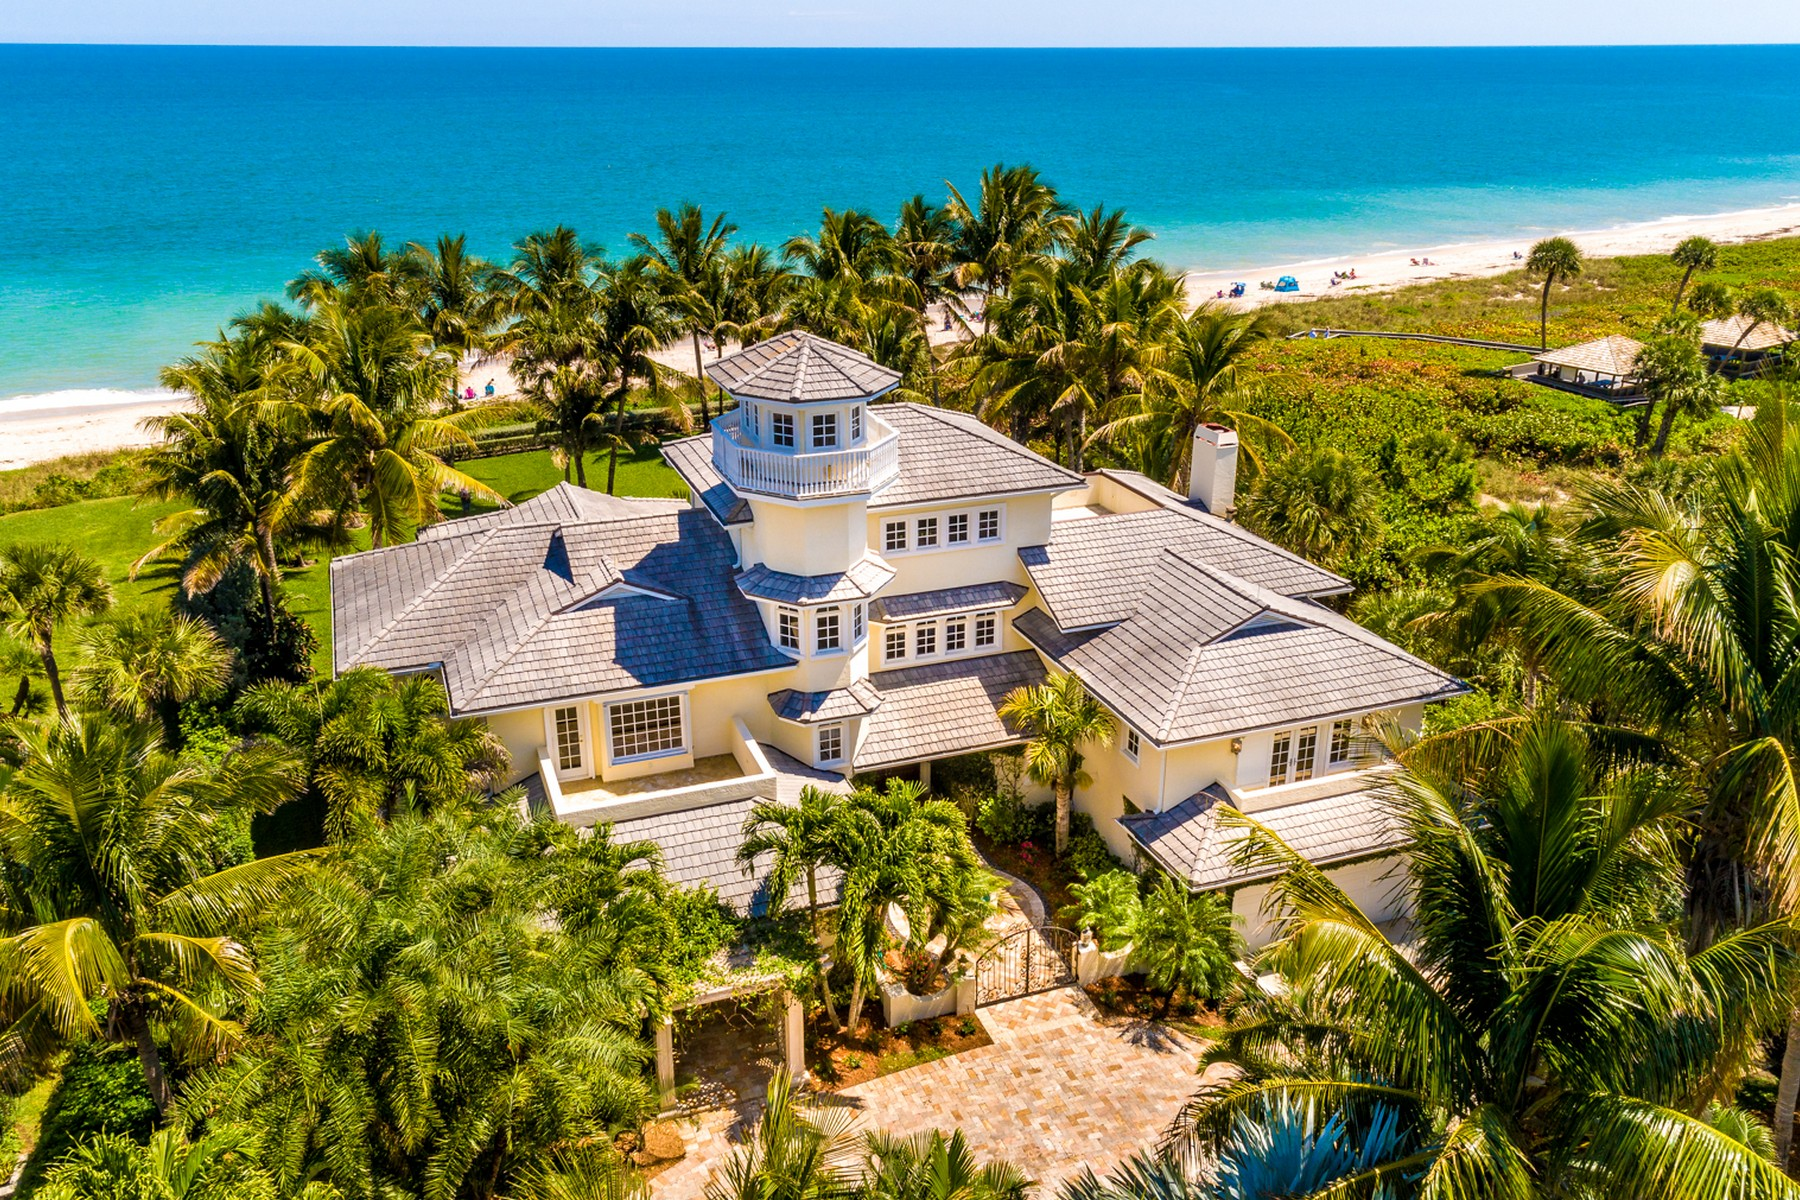 Property для того Продажа на Magnificent Oceanfront Estate 960 Reef Road Vero Beach, Флорида 32963 Соединенные Штаты